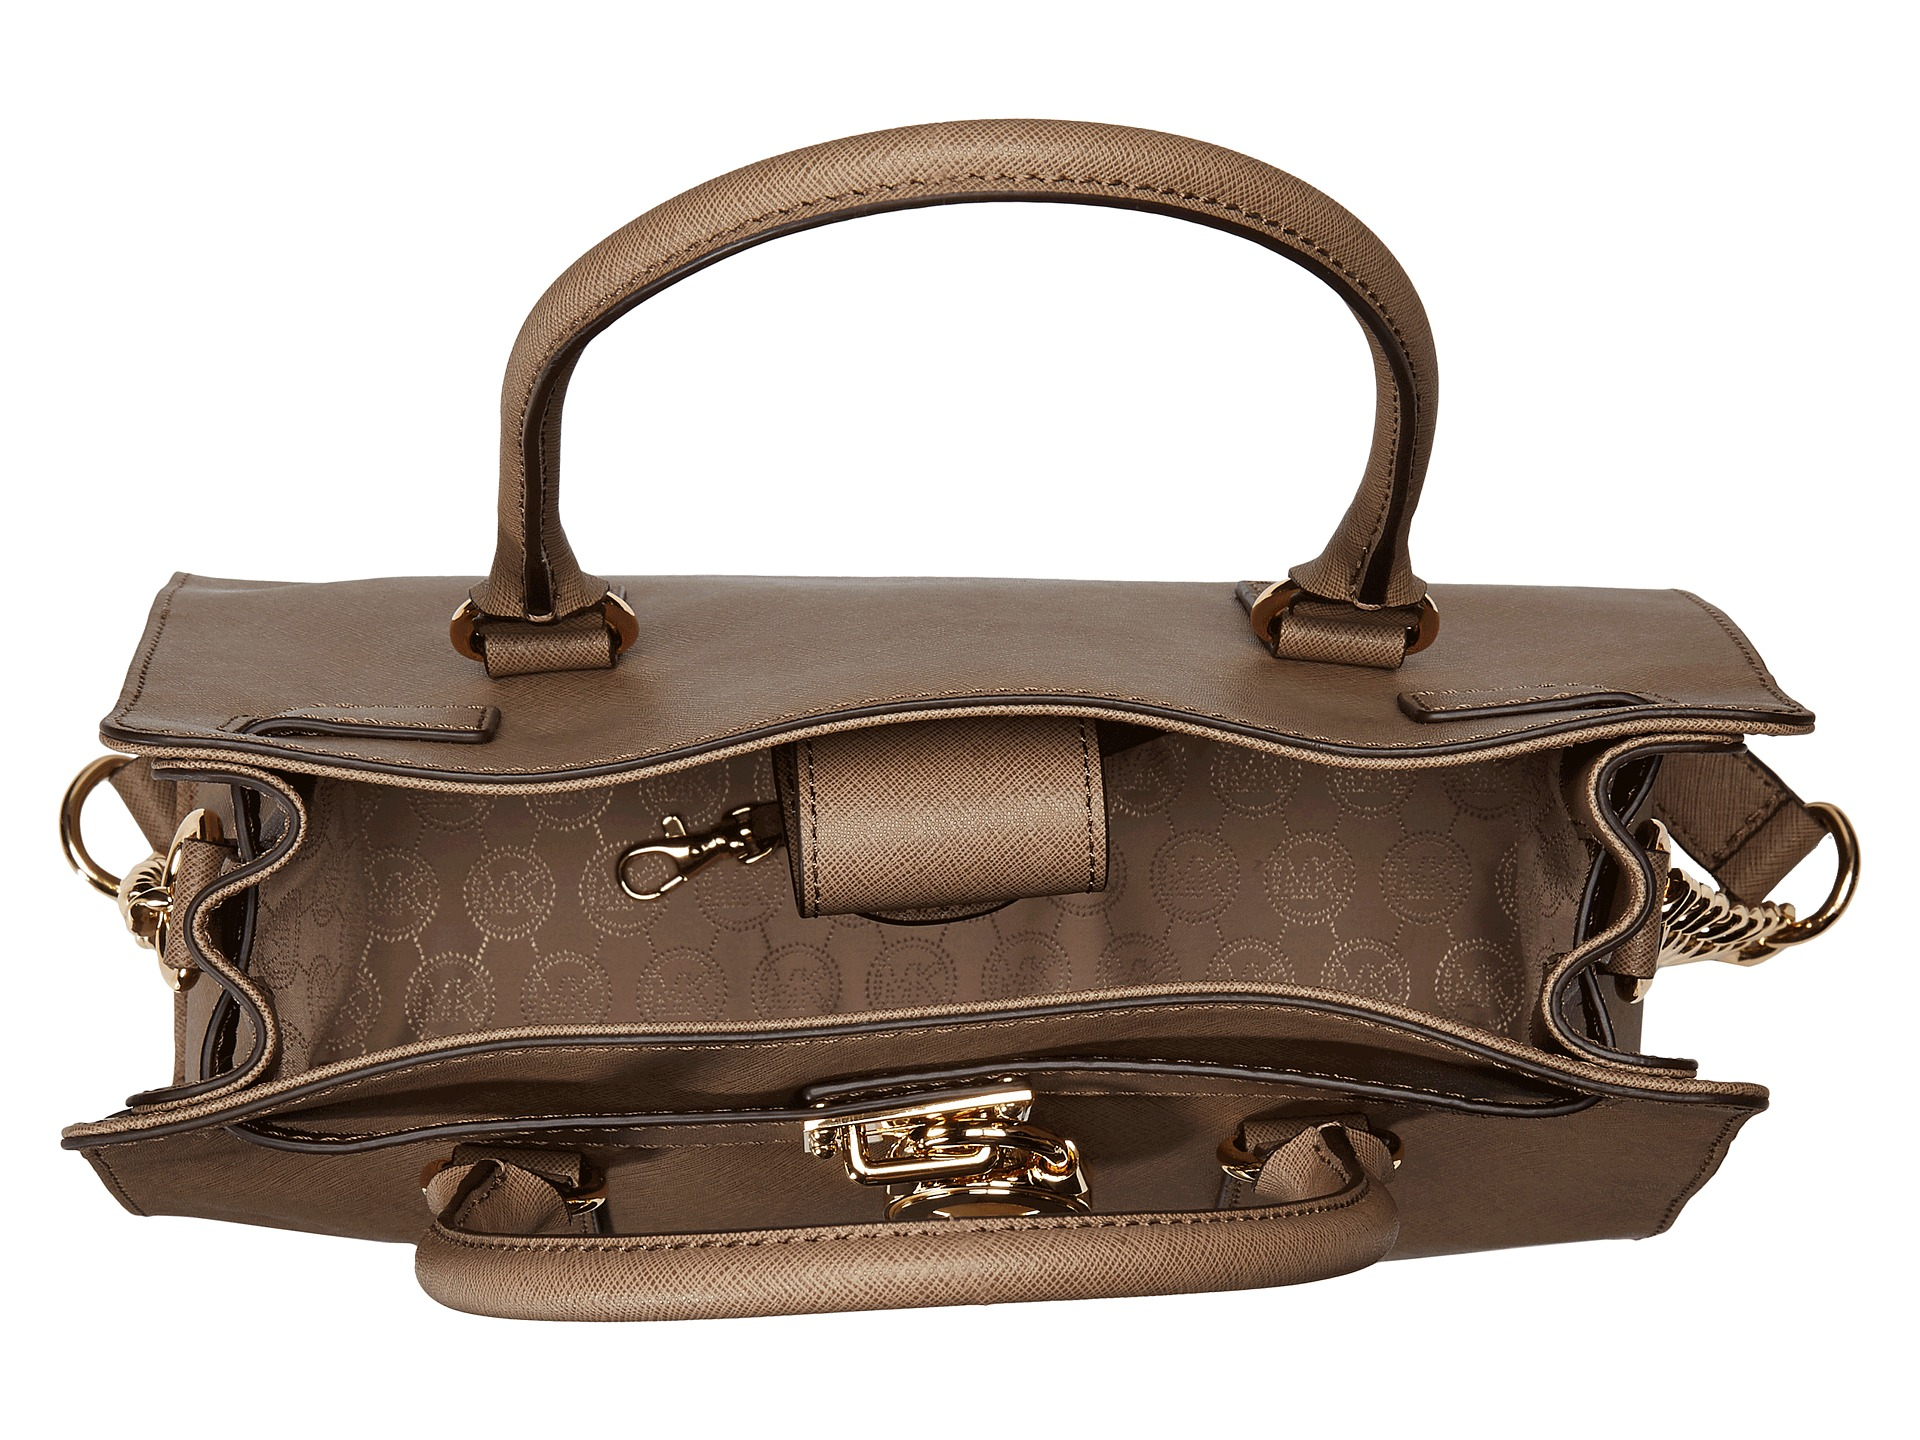 6d34c128cb7145 Gallery. Previously sold at: Zappos · Women's Michael By Michael Kors  Hamilton